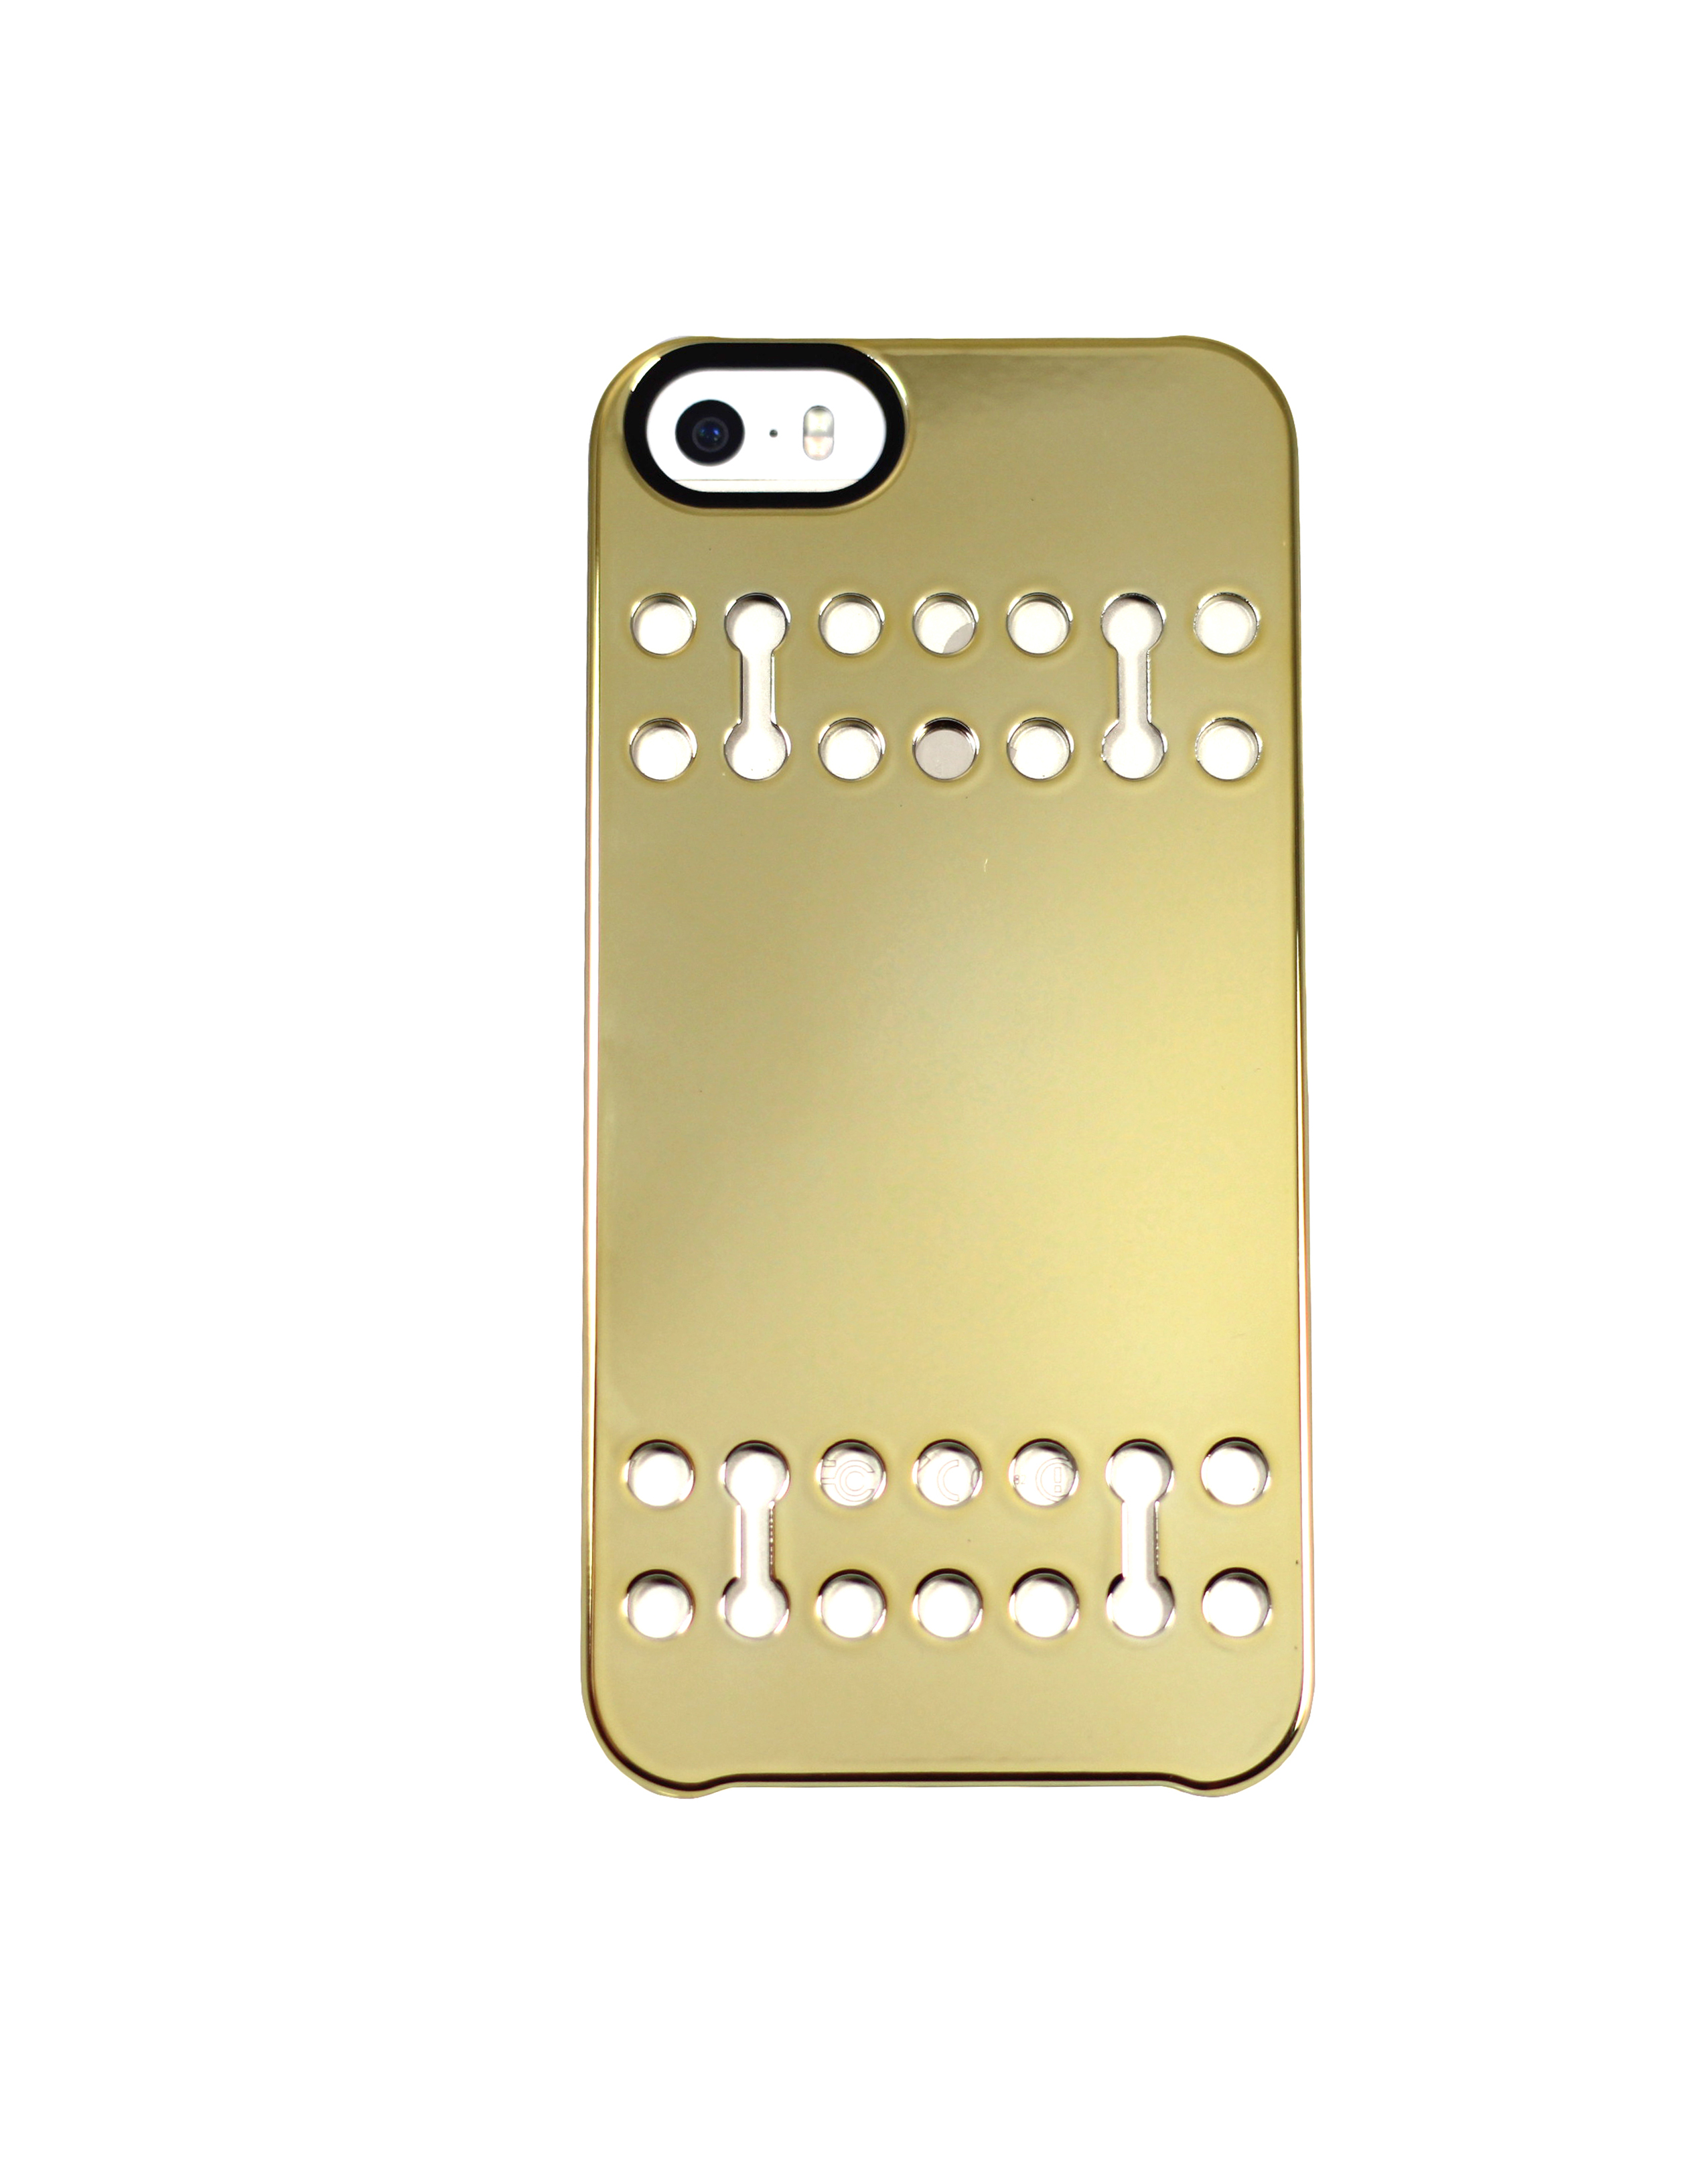 Snap Case for iPhone 5/5S - Mirrored Gold | Boostcase